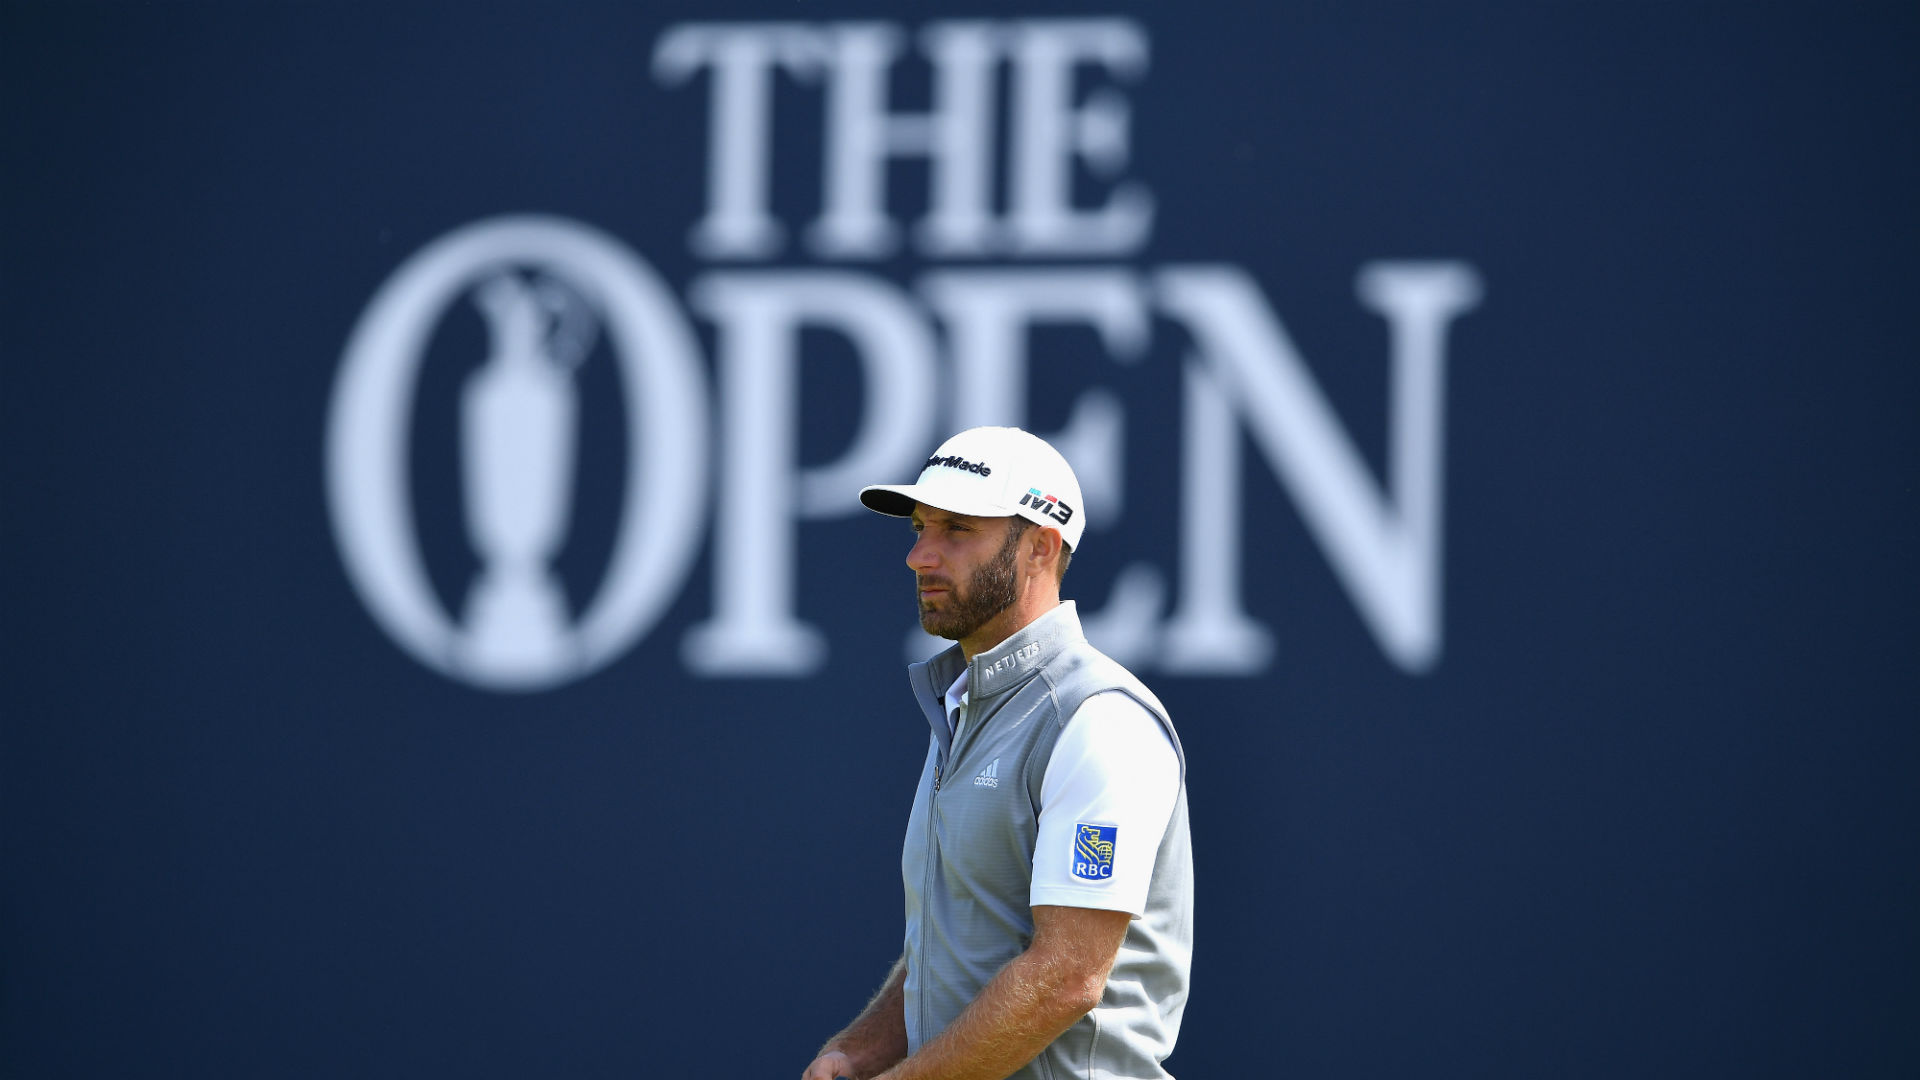 Dustin Johnson to tee off as betting favourite on British Open odds